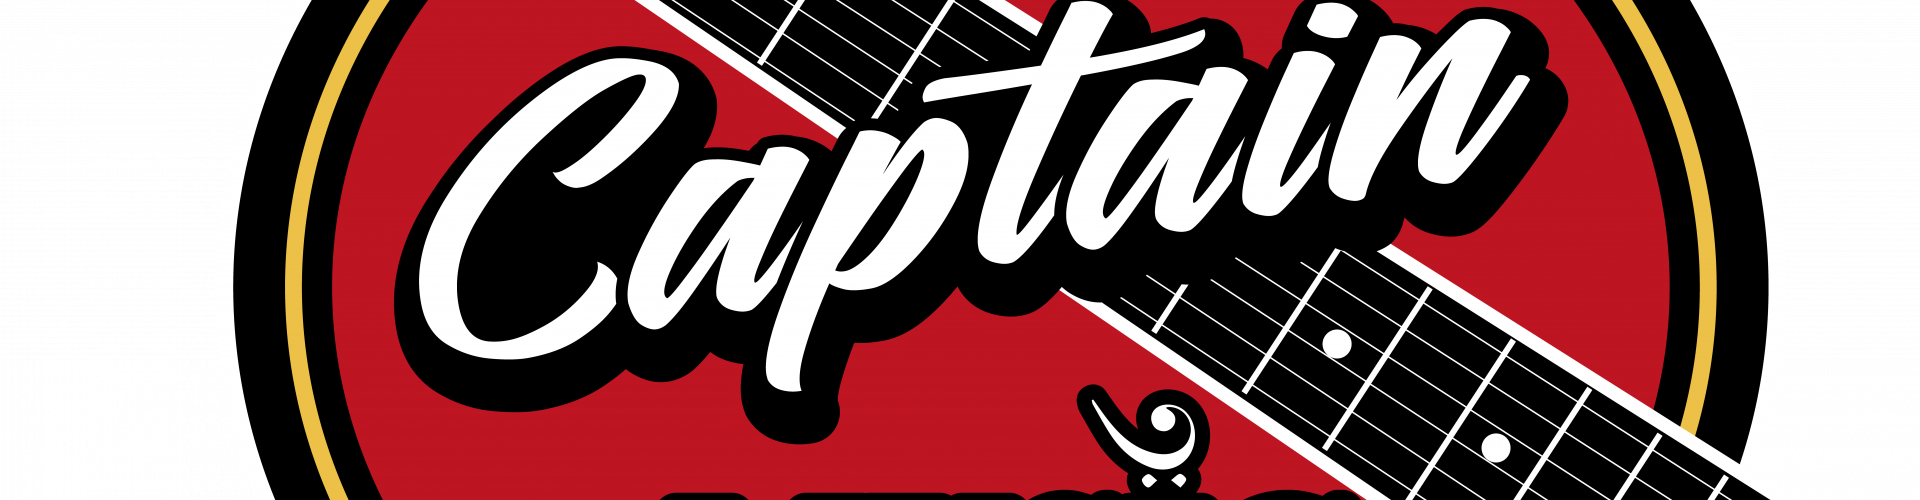 Captain Music : un super nouveau magasin à Bordeaux